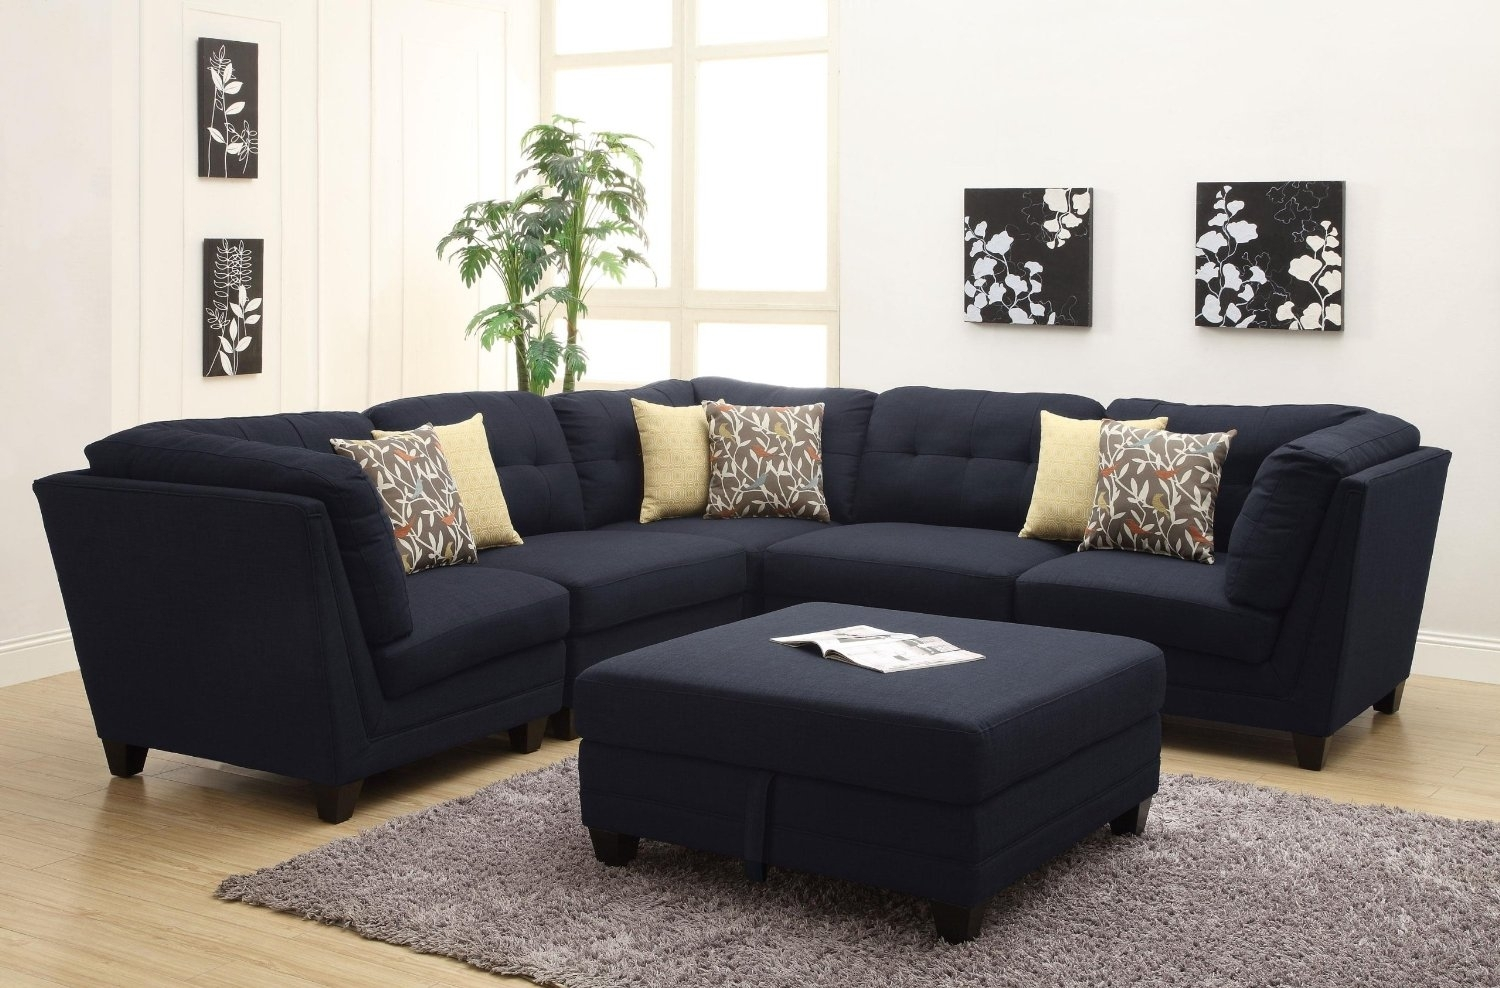 Most Comfortable Sectional Sofa For Fulfilling A Pleasant Atmosphere Pertaining To Comfy Sectional Sofas (Image 6 of 10)